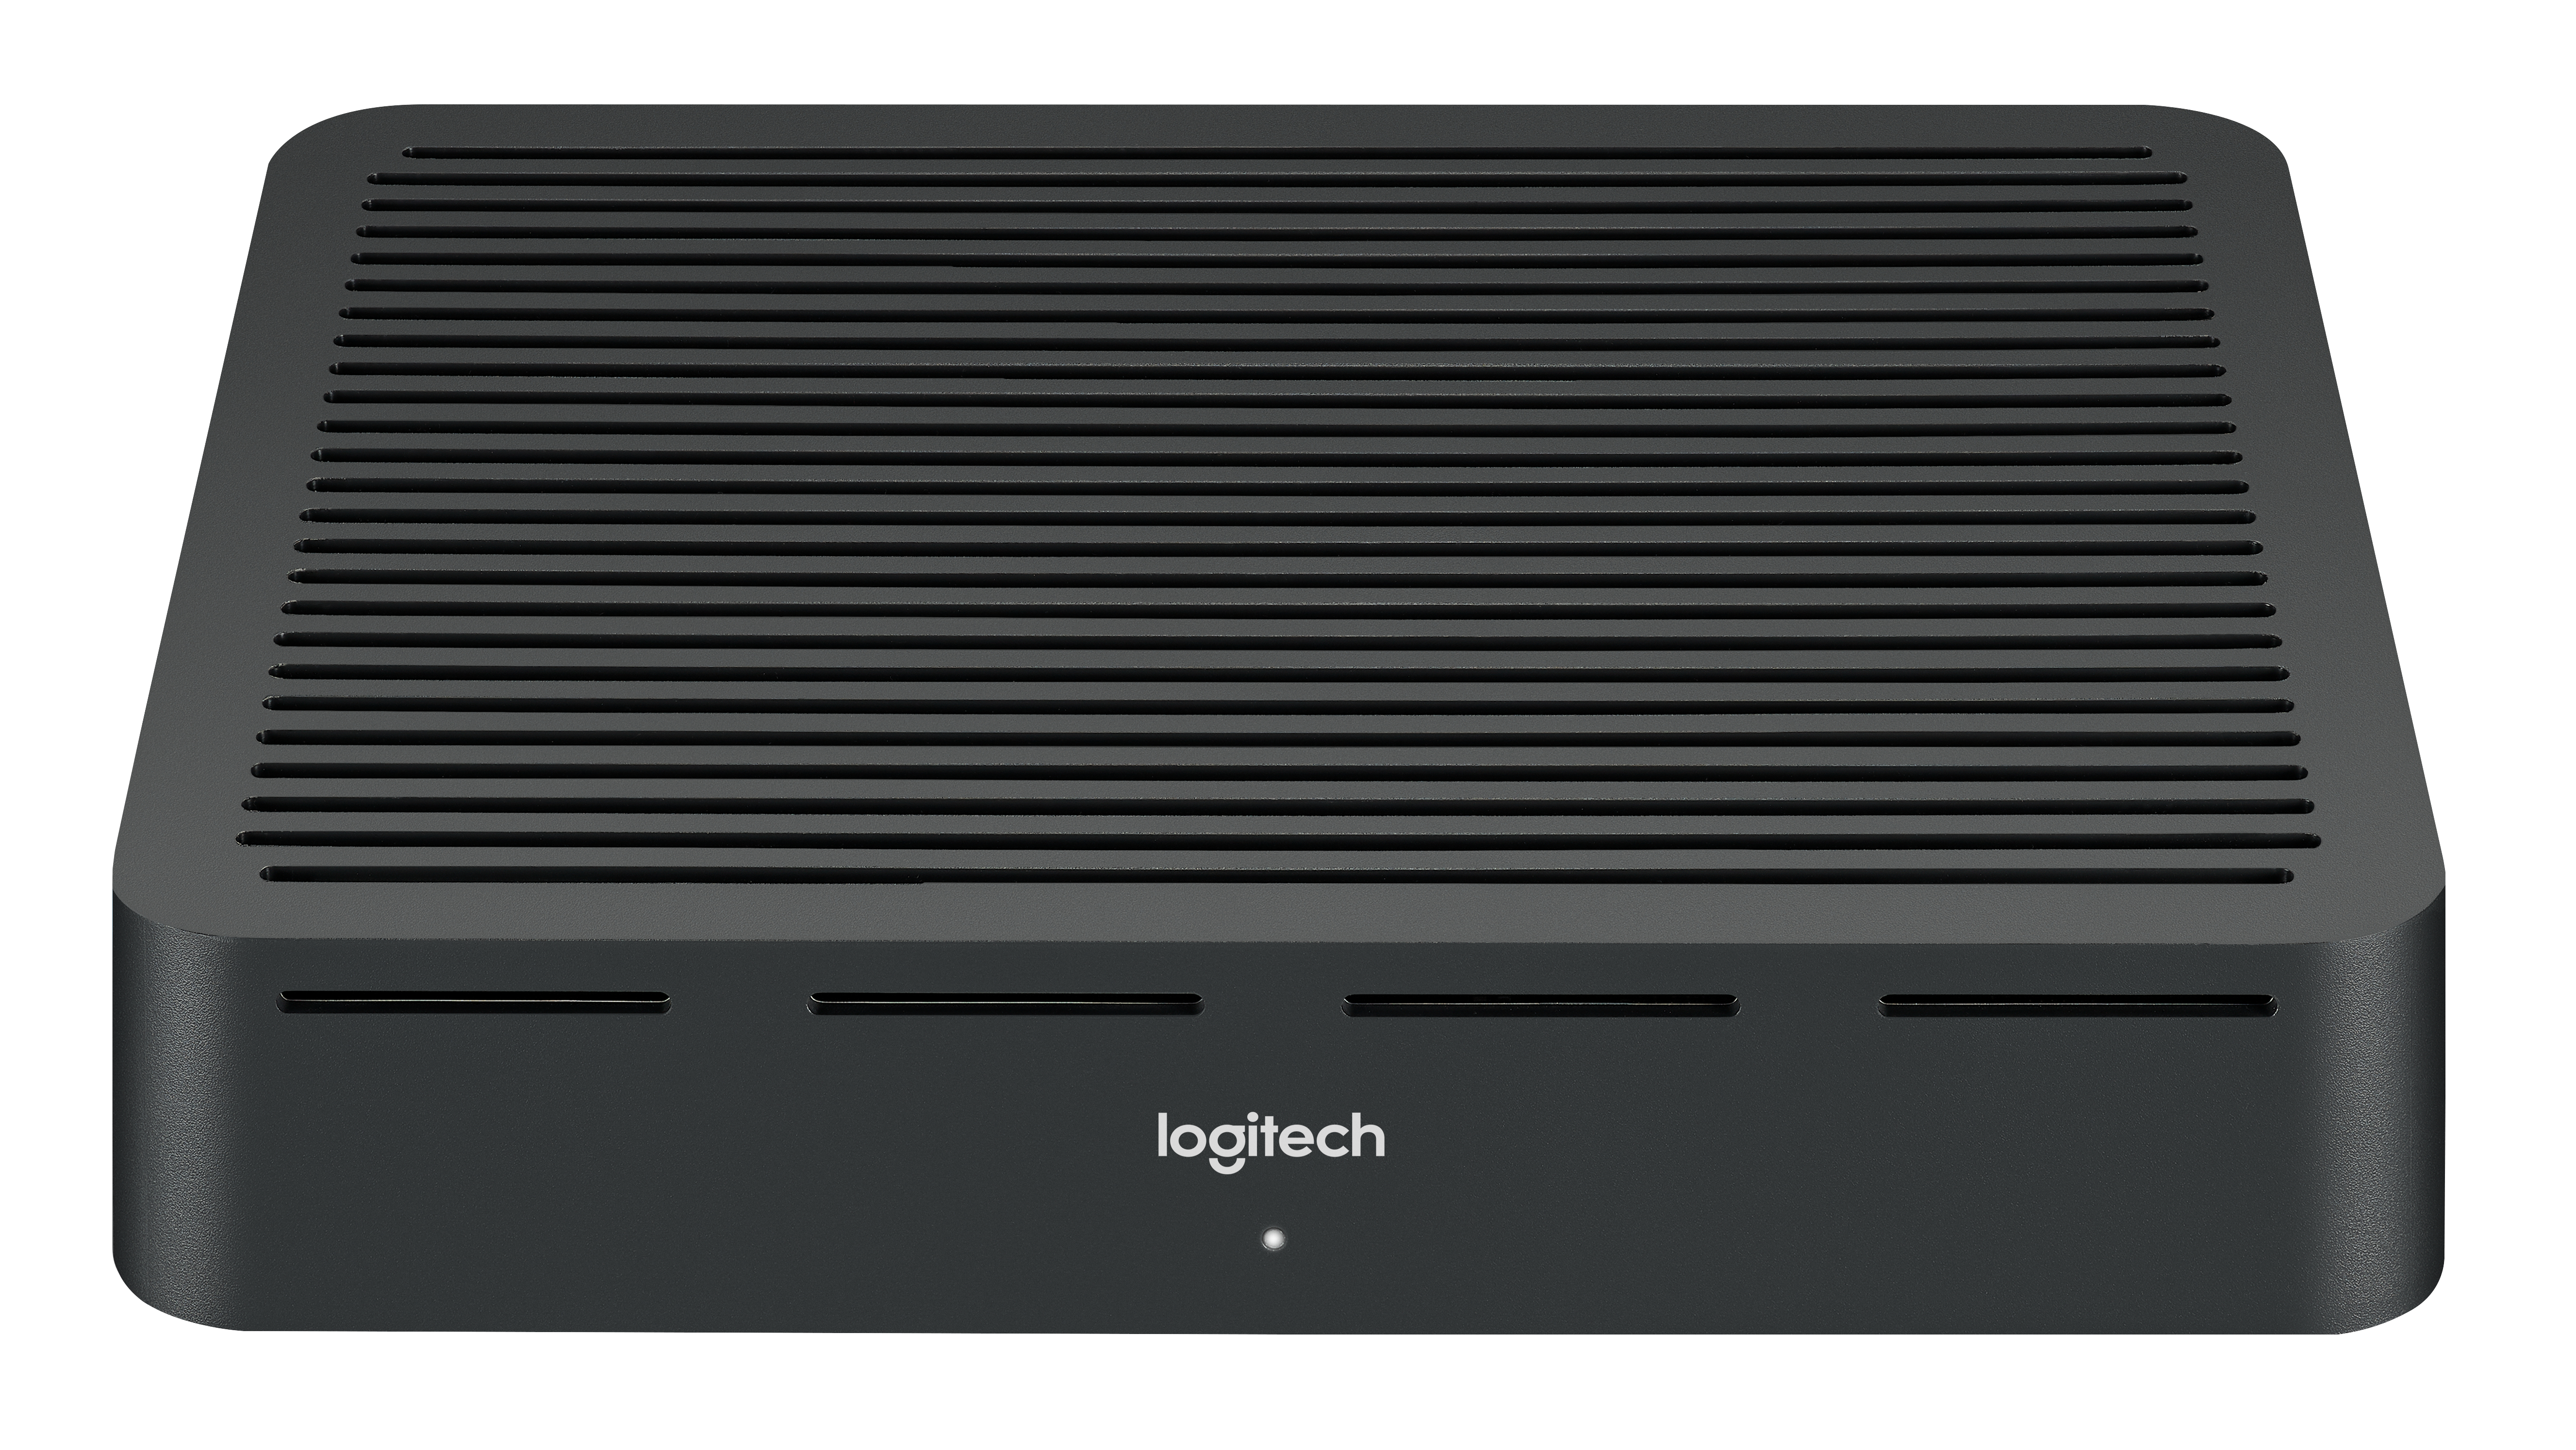 Logitech Rally Display Hub - Video Conferencing Device 993-001951 - C2000